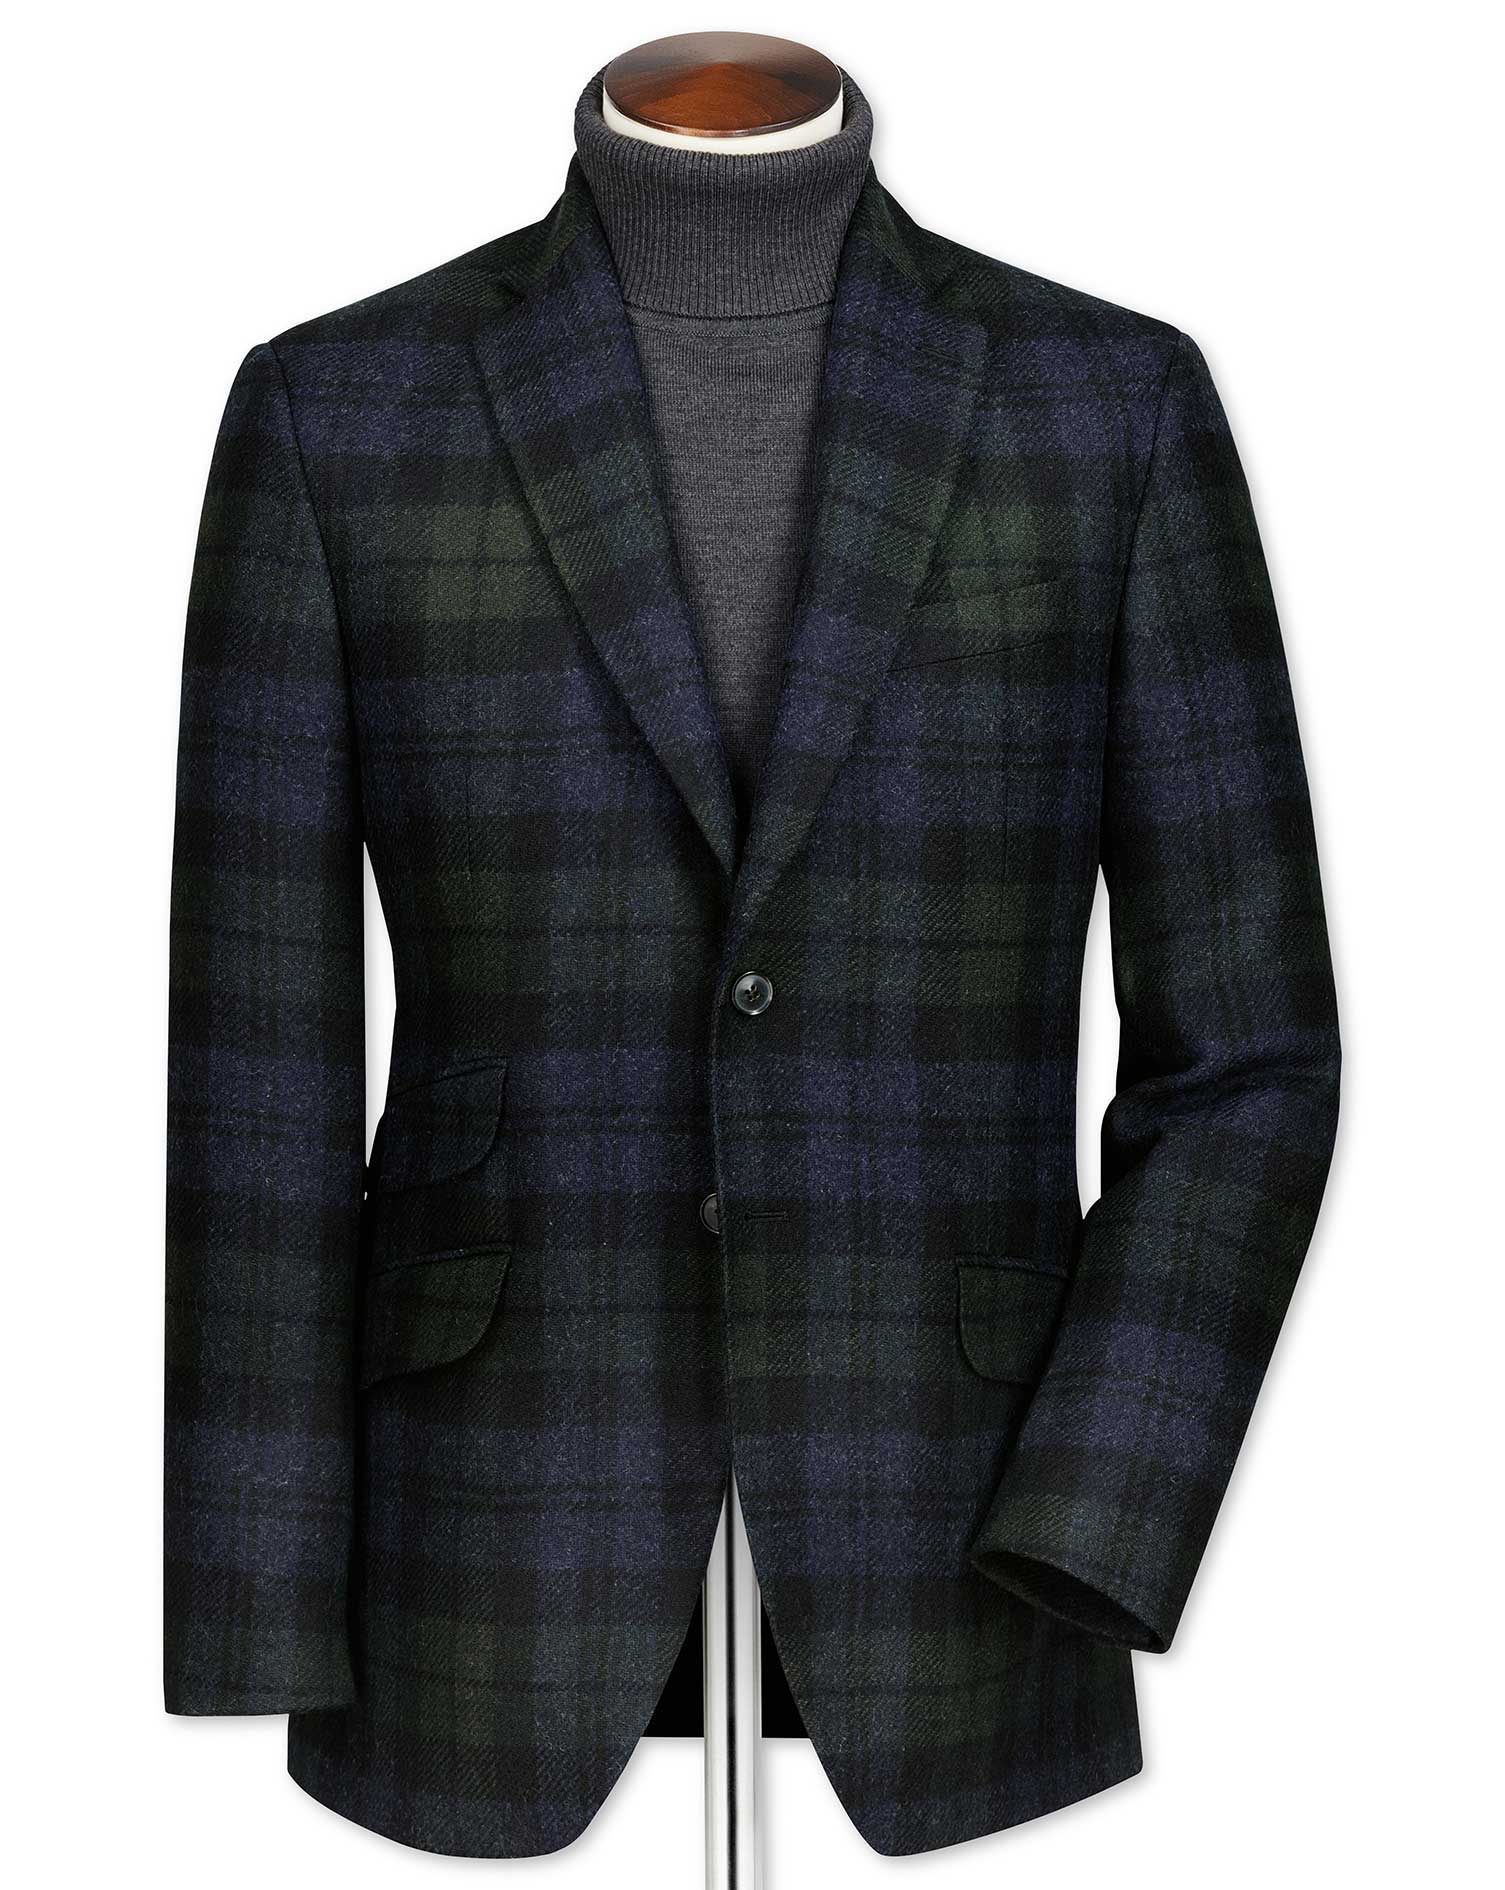 Green and Navy Slim Fit British Tartan Luxury Wool Jacket Size 42 Regular by Charles Tyrwhitt